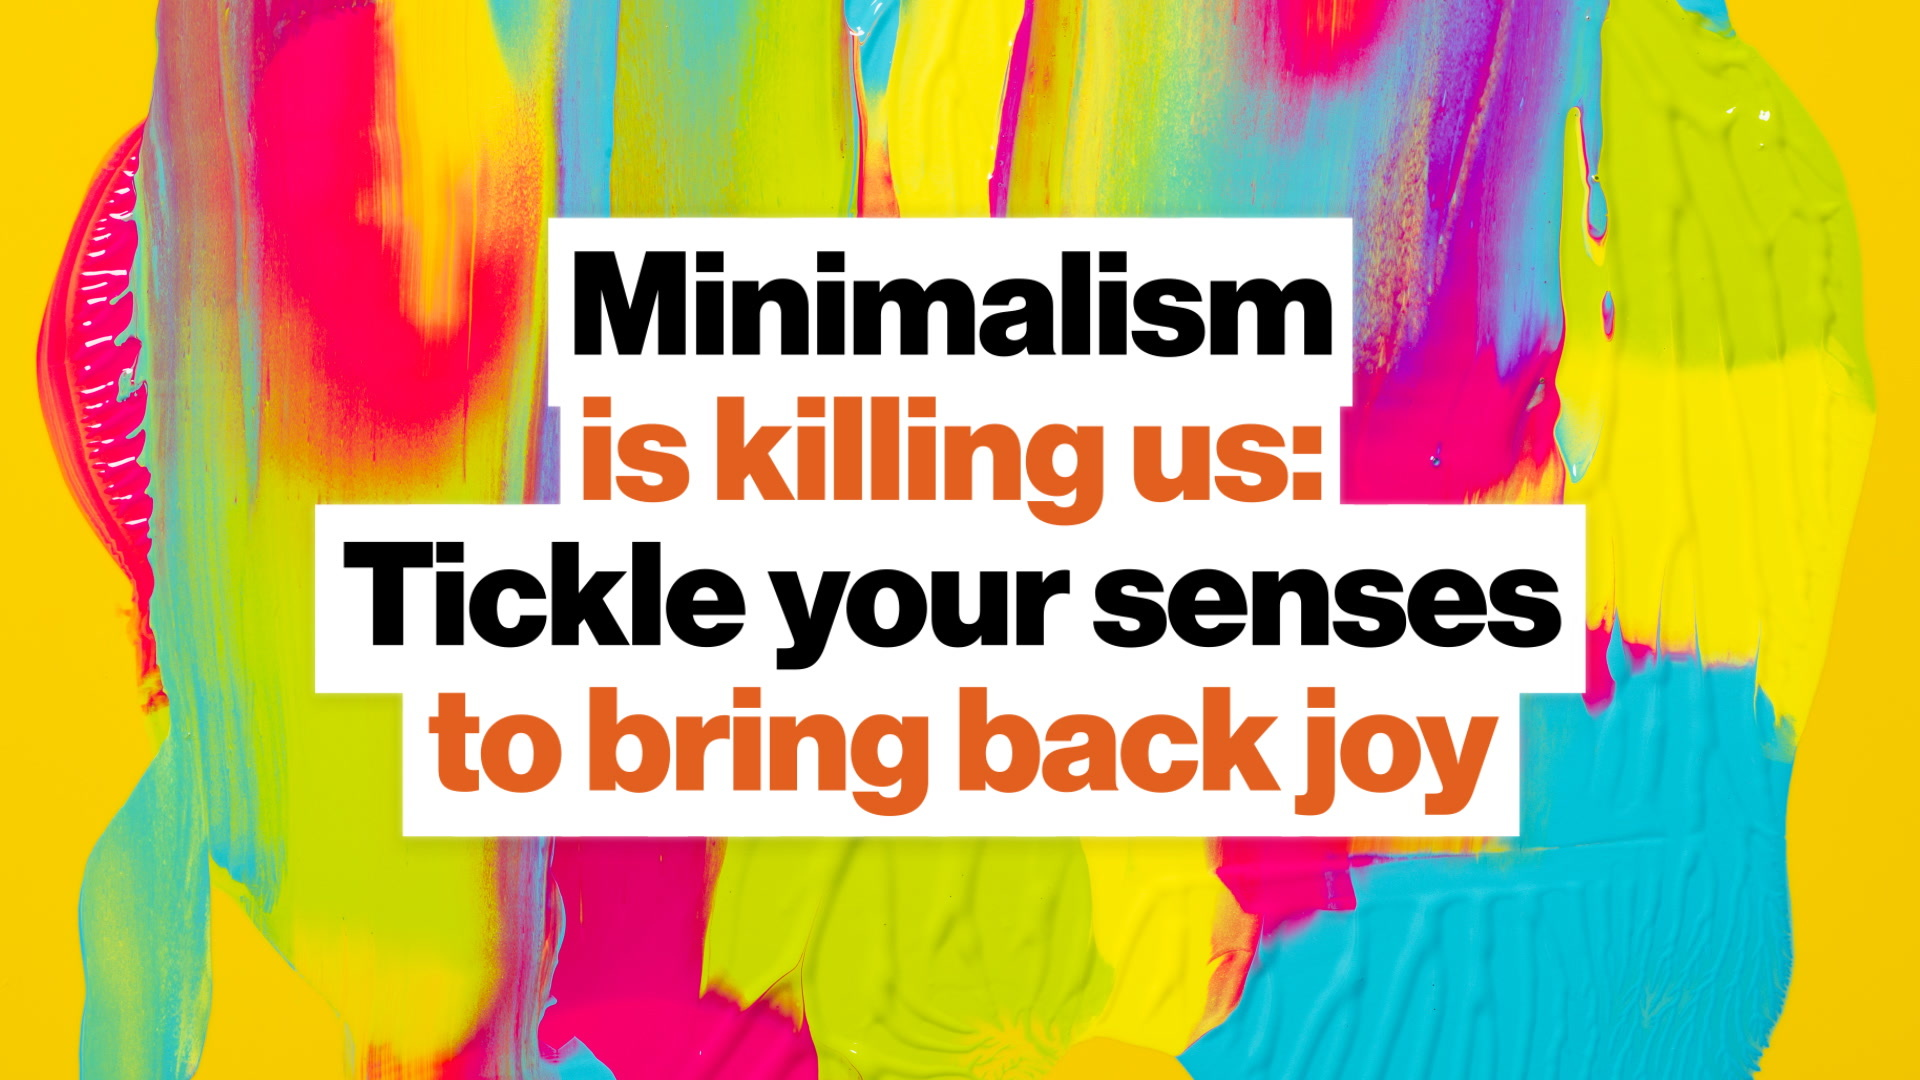 Minimalism is killing us: Re-awaken your senses, bring back joy